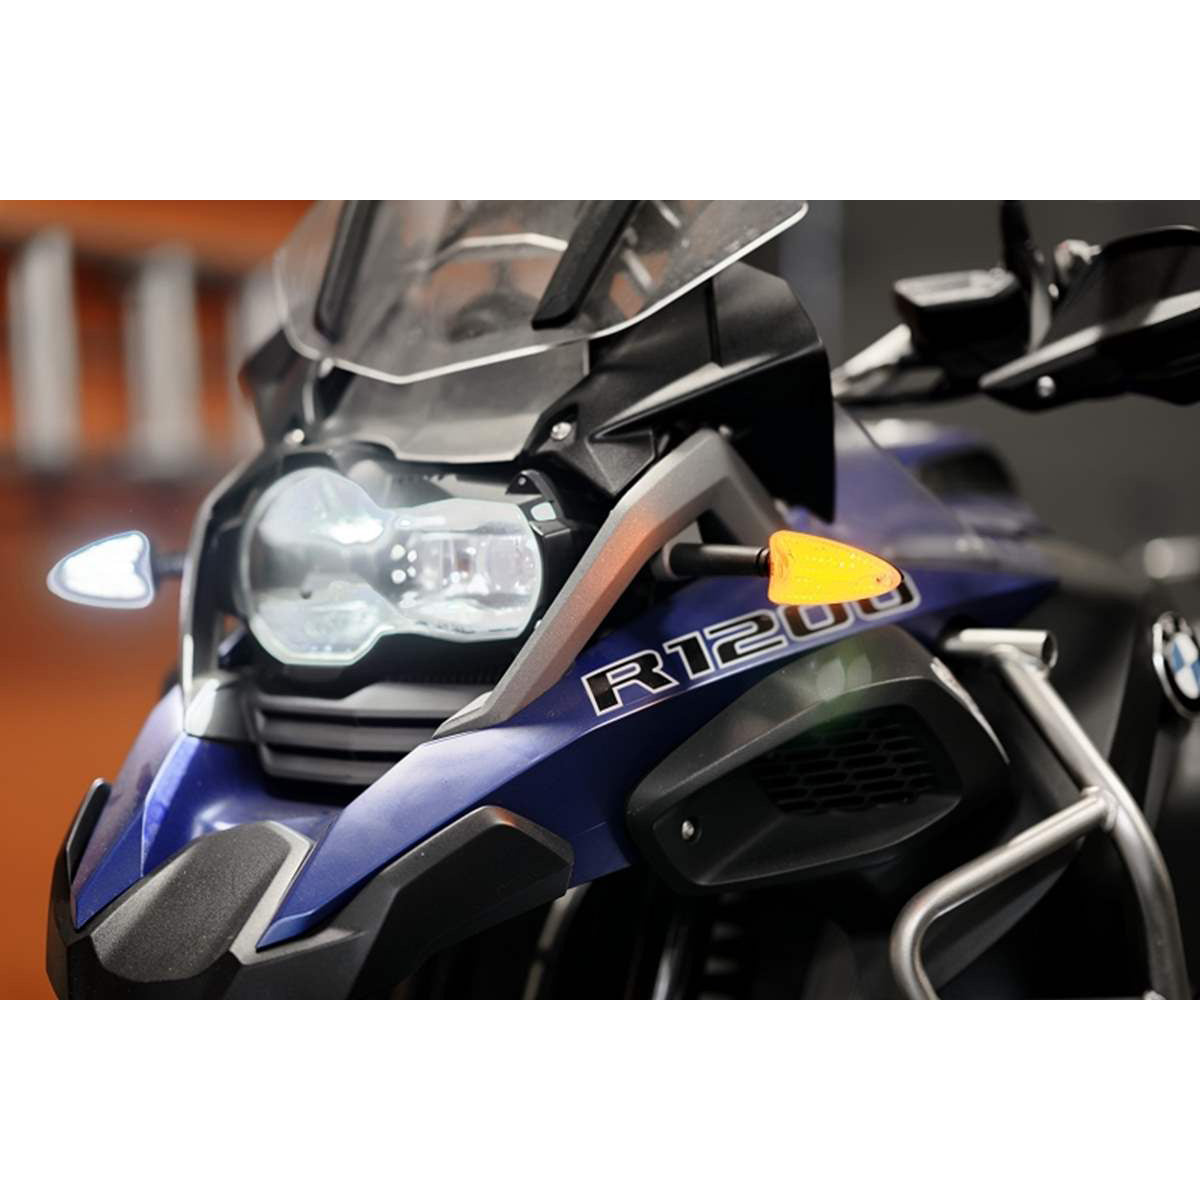 Evolution LED H4 Safety Turn Signal Flashers Inserts - Rear Running Lights BMW R1200GS, G310GS, GSA or RnineT 2018 and up